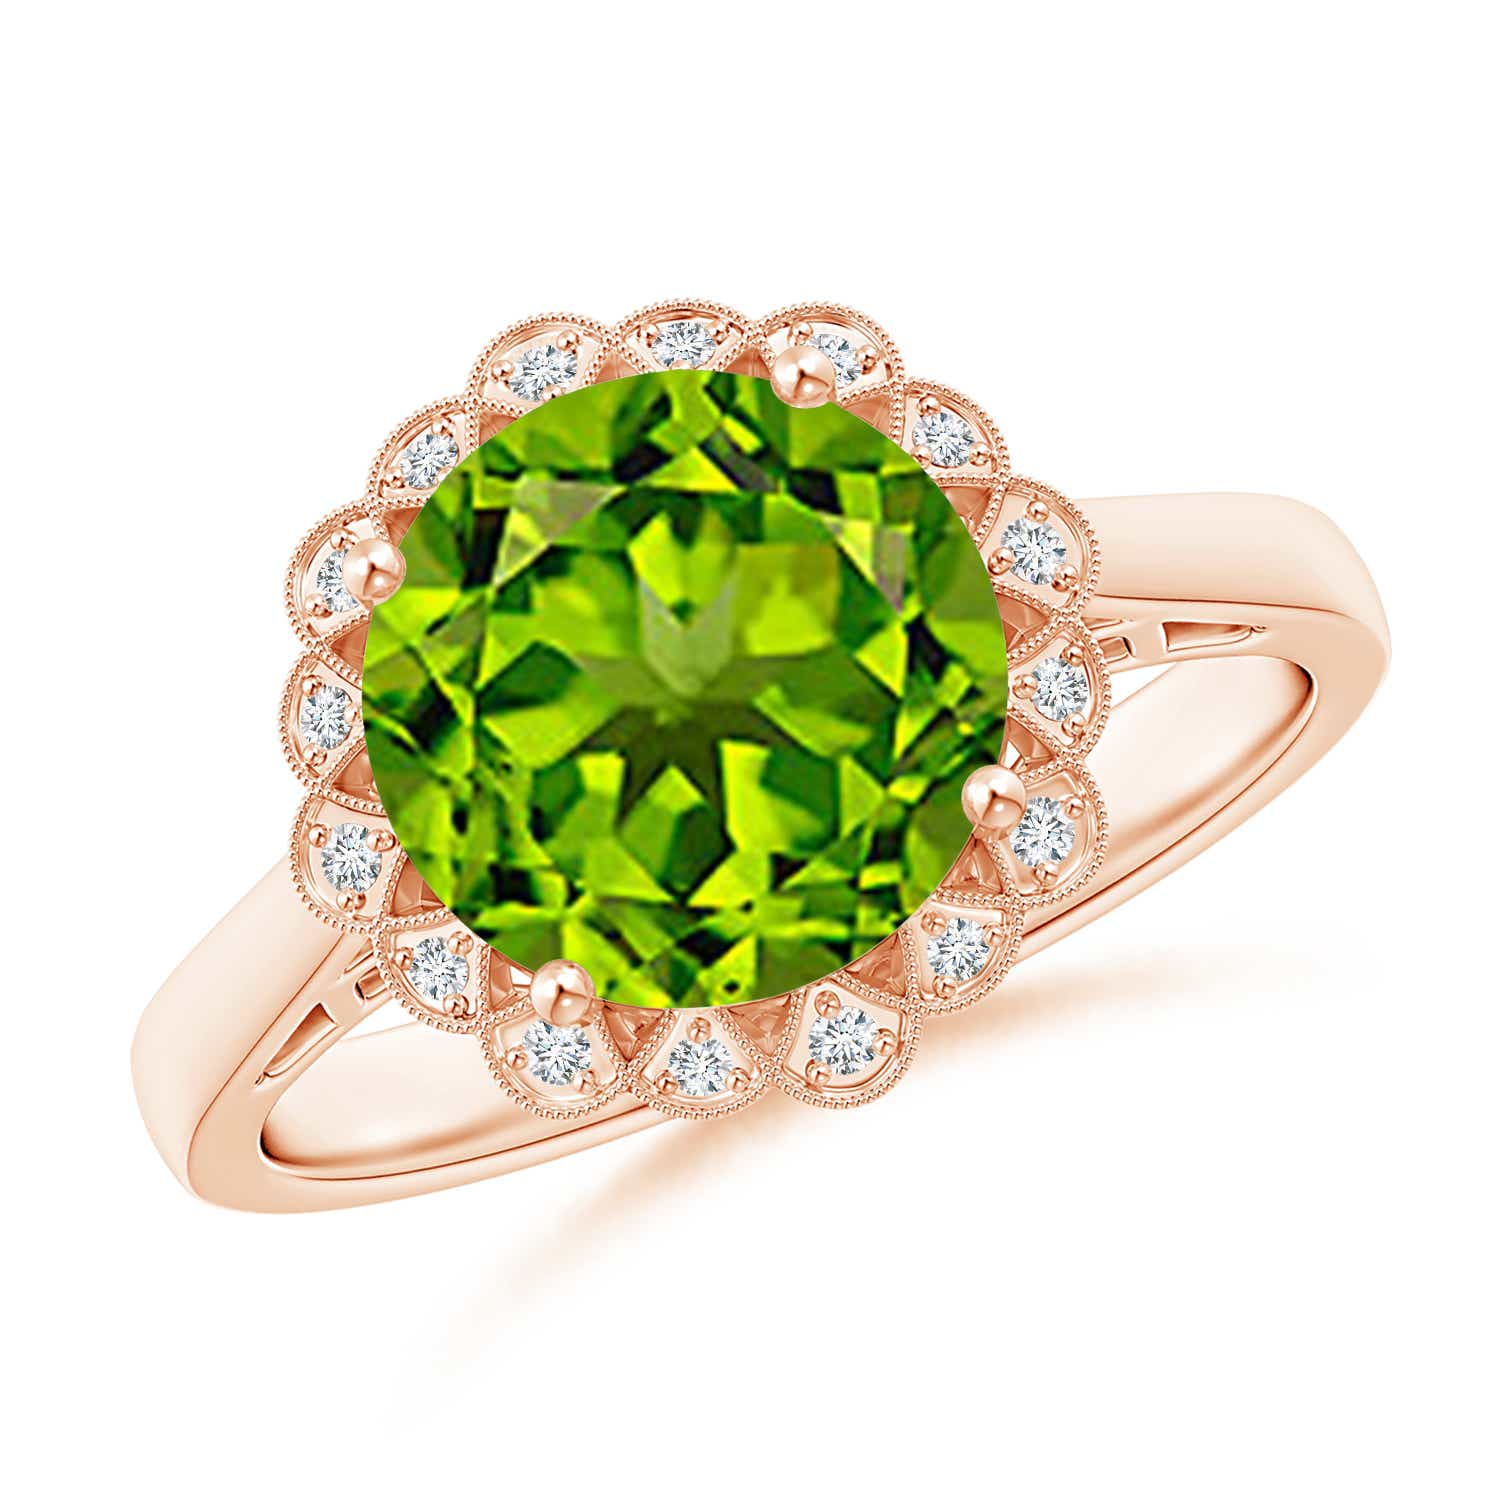 Angara Vintage Diamond Floral Halo Oval Peridot Cocktail Ring in Yellow Gold zfREdxMkA